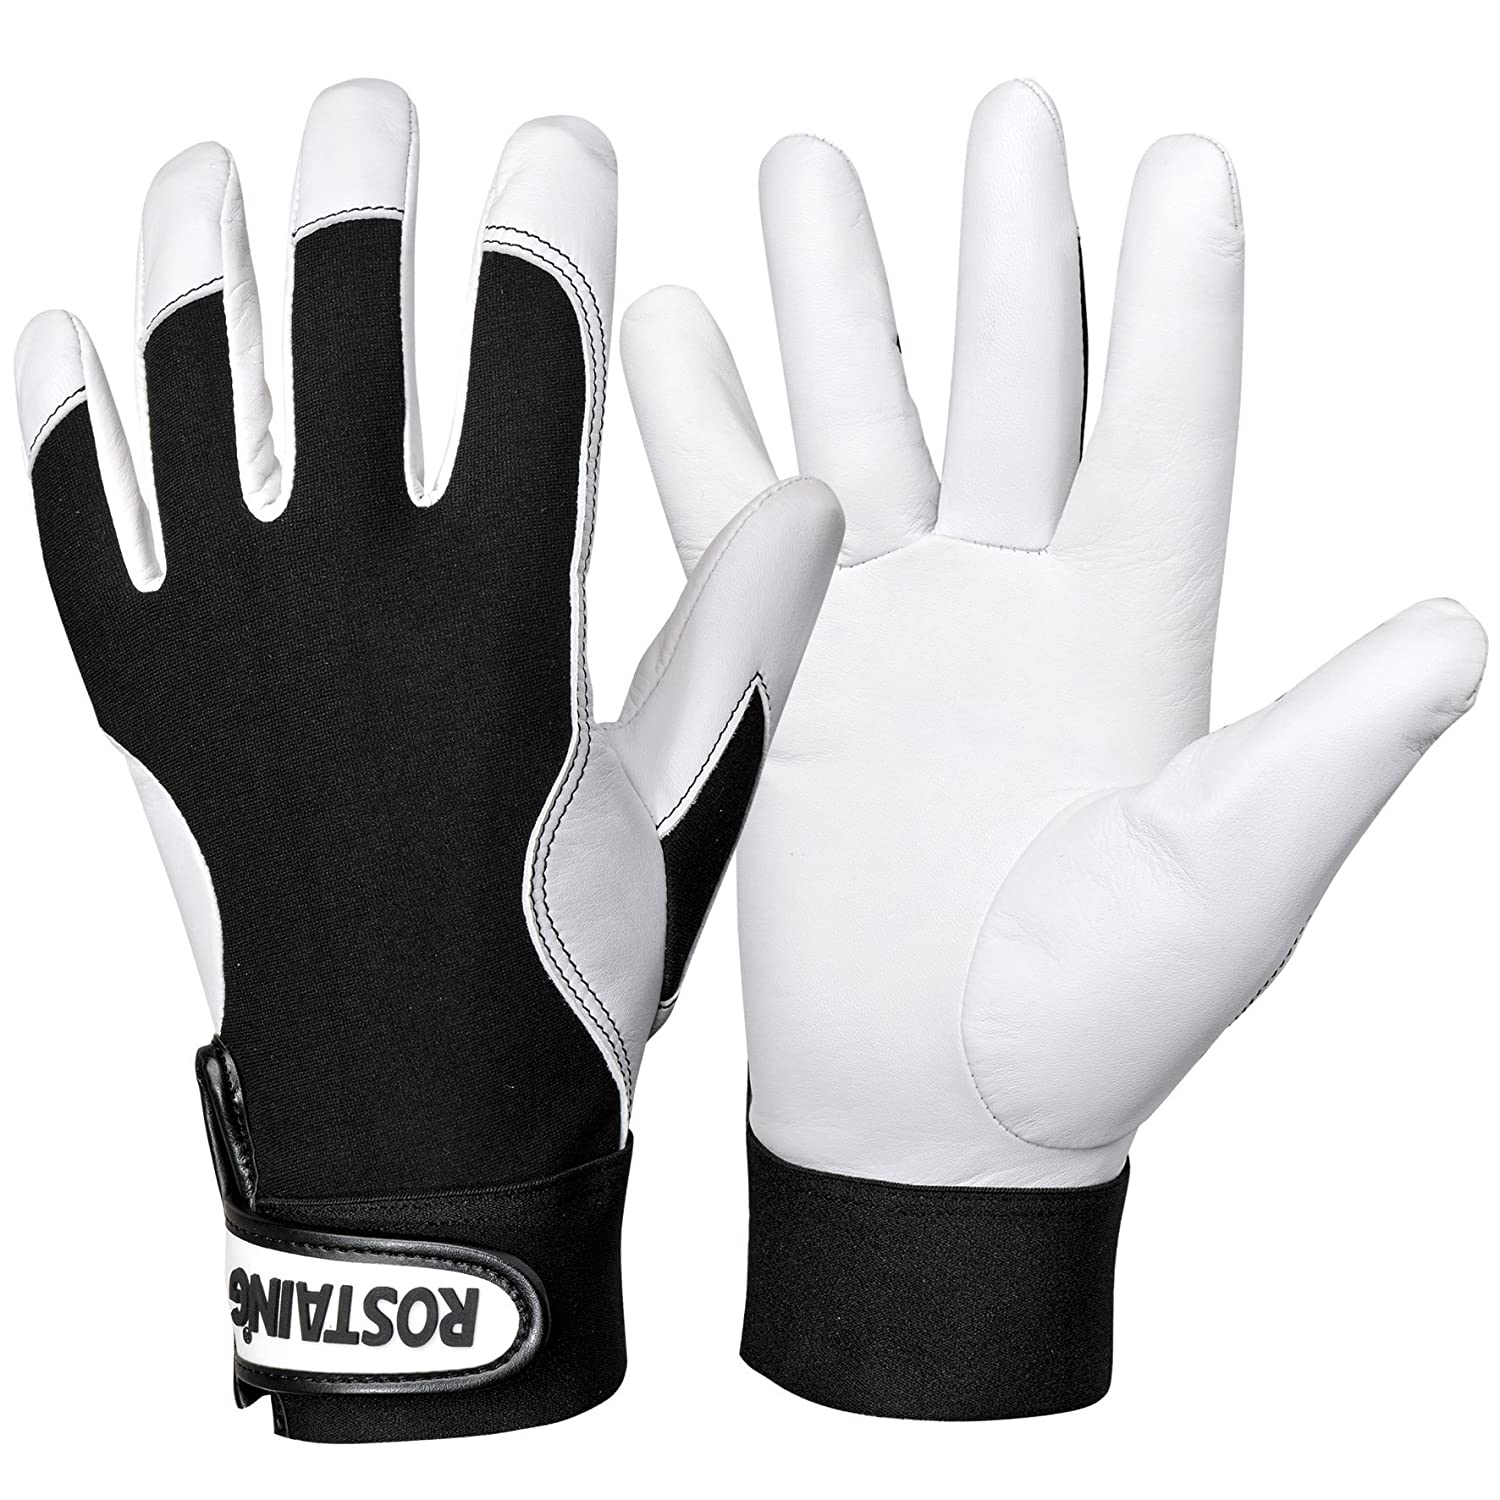 Rostaing CONTACT/IT08 Gants, Blanc/Noir, 32.5 x 11 x 1 cm